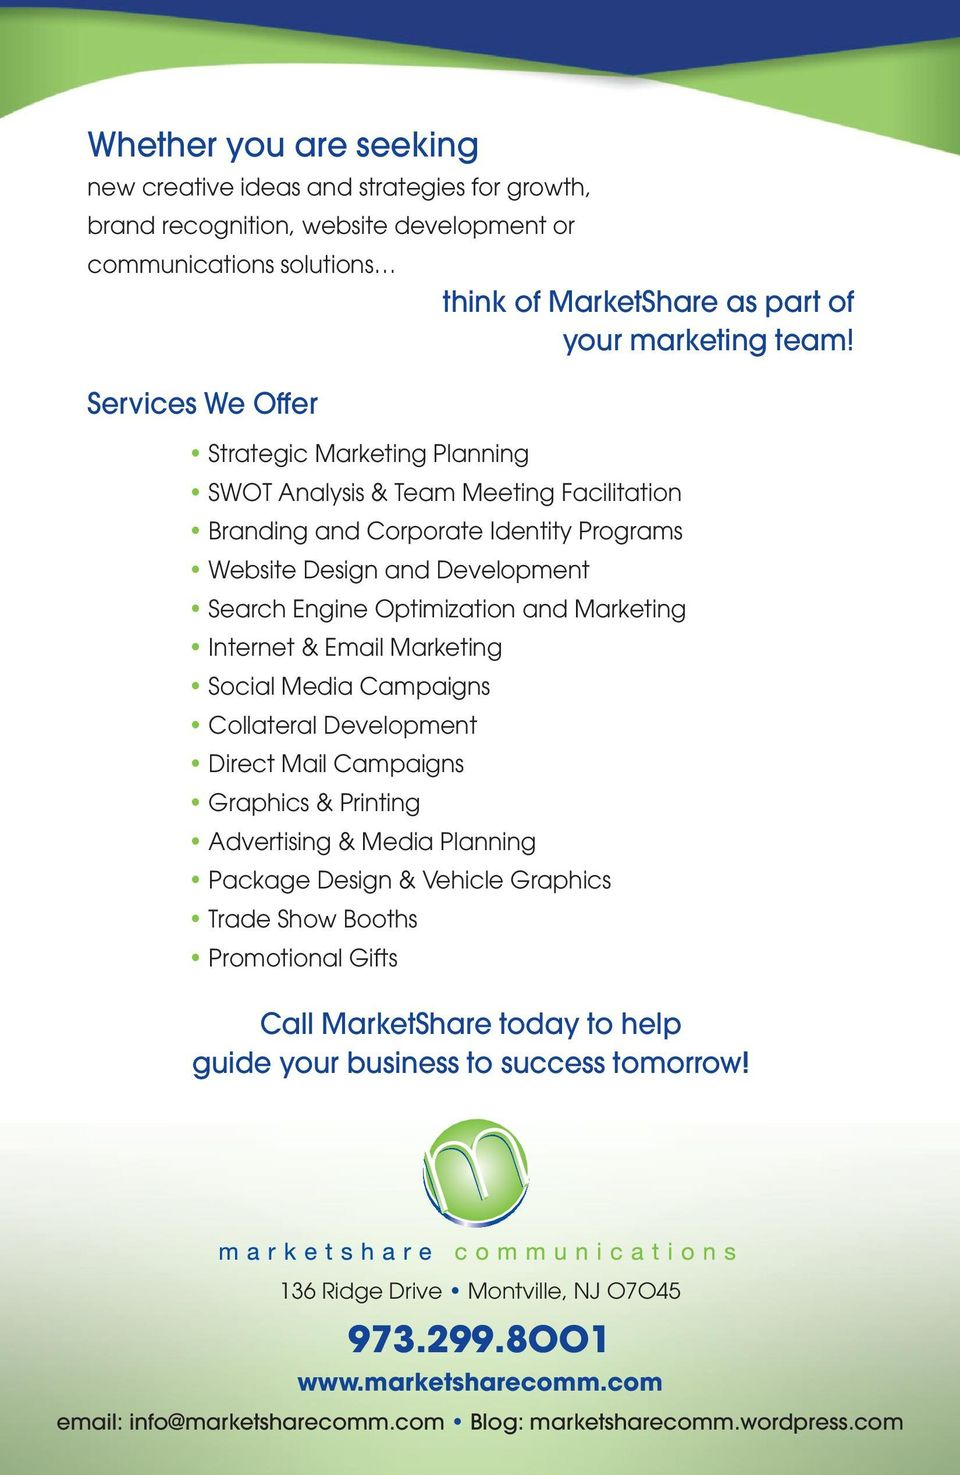 Marketing Internet & Email Marketing Social Media Campaigns Collateral Development Direct Mail Campaigns Graphics & Printing Advertising & Media Planning Package Design & Vehicle Graphics Trade Show